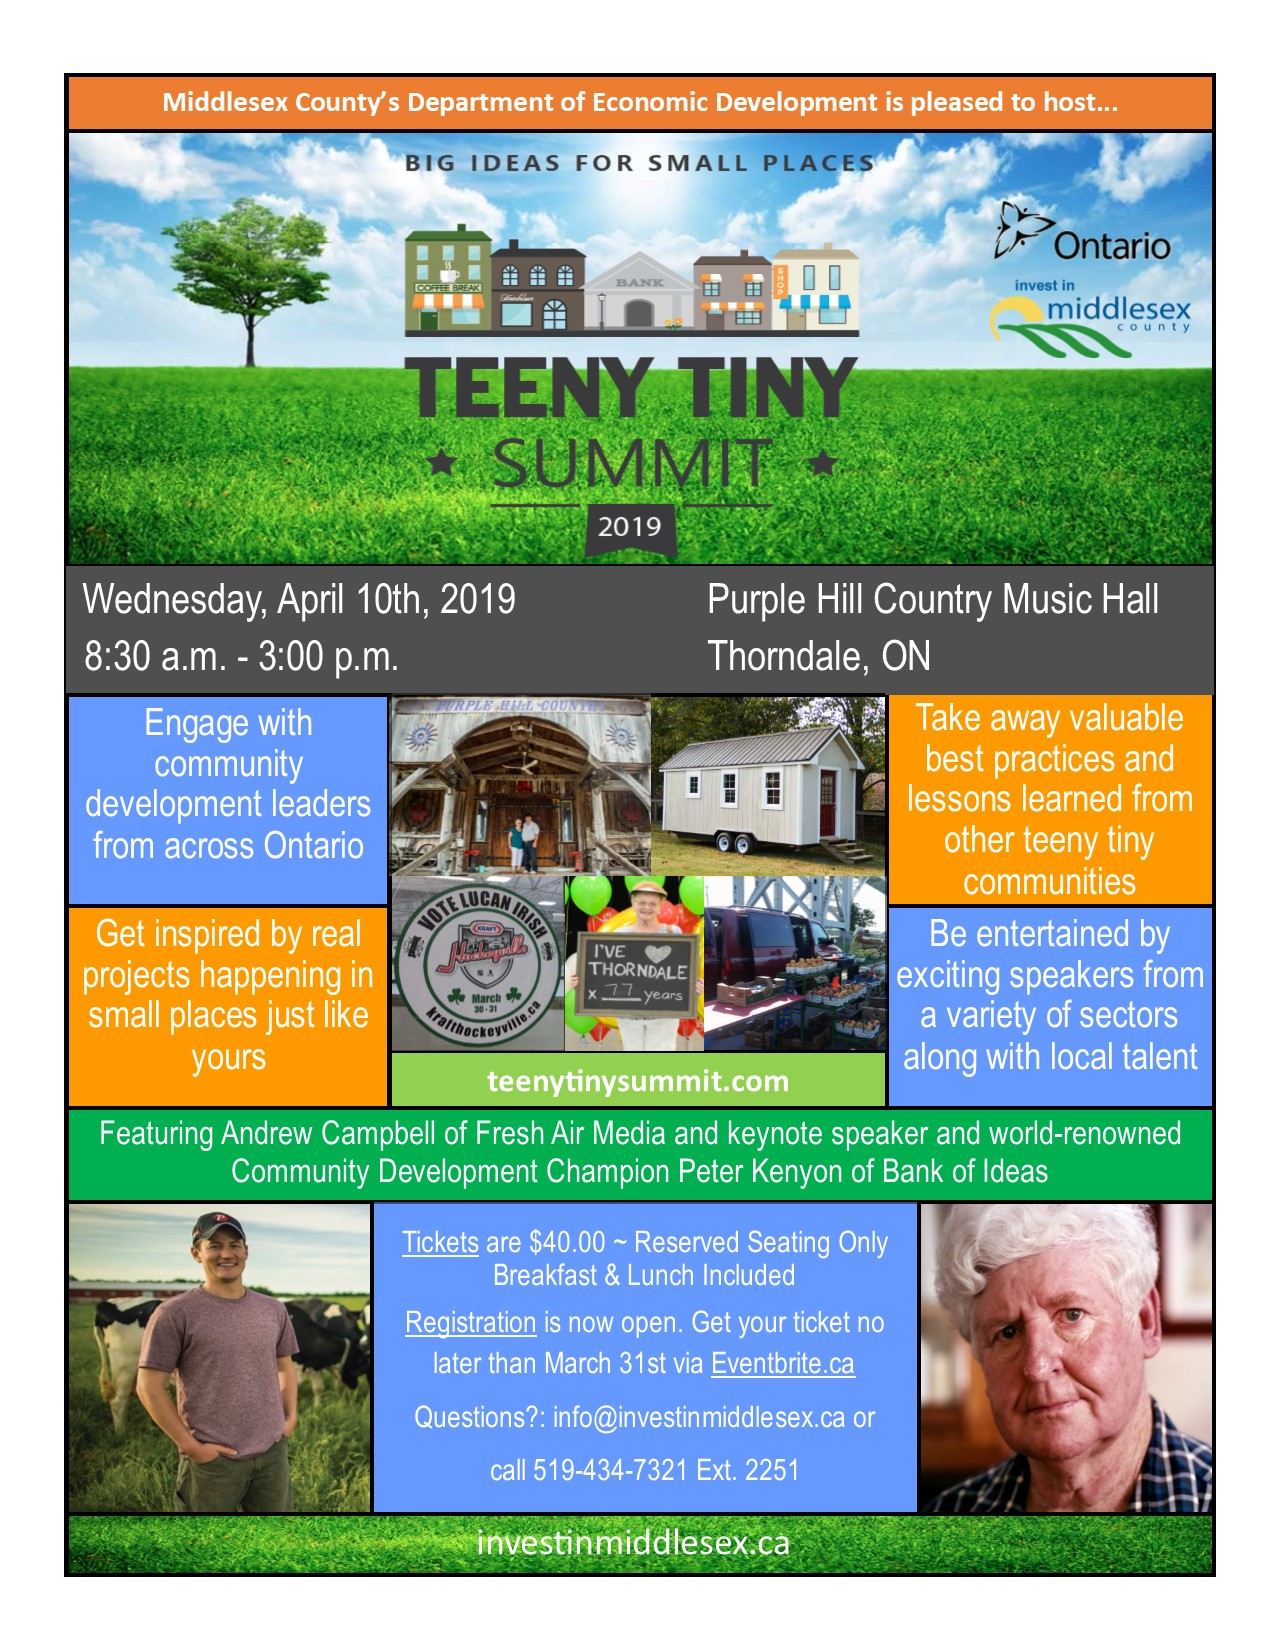 TTS Flyer - Middlesex County